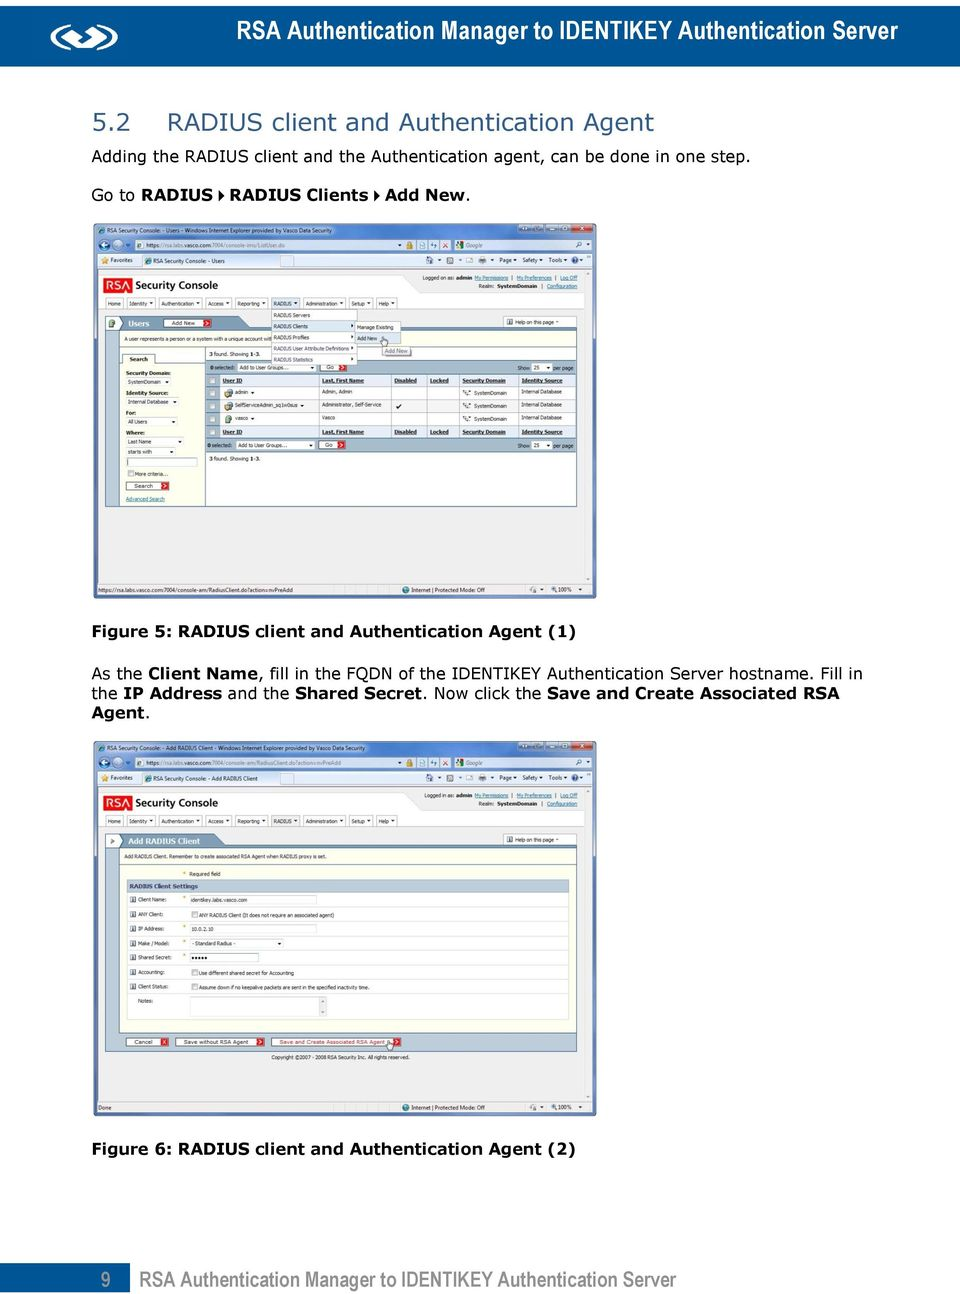 Figure 5: RADIUS client and Authentication Agent (1) As the Client Name, fill in the FQDN of the IDENTIKEY Authentication Server